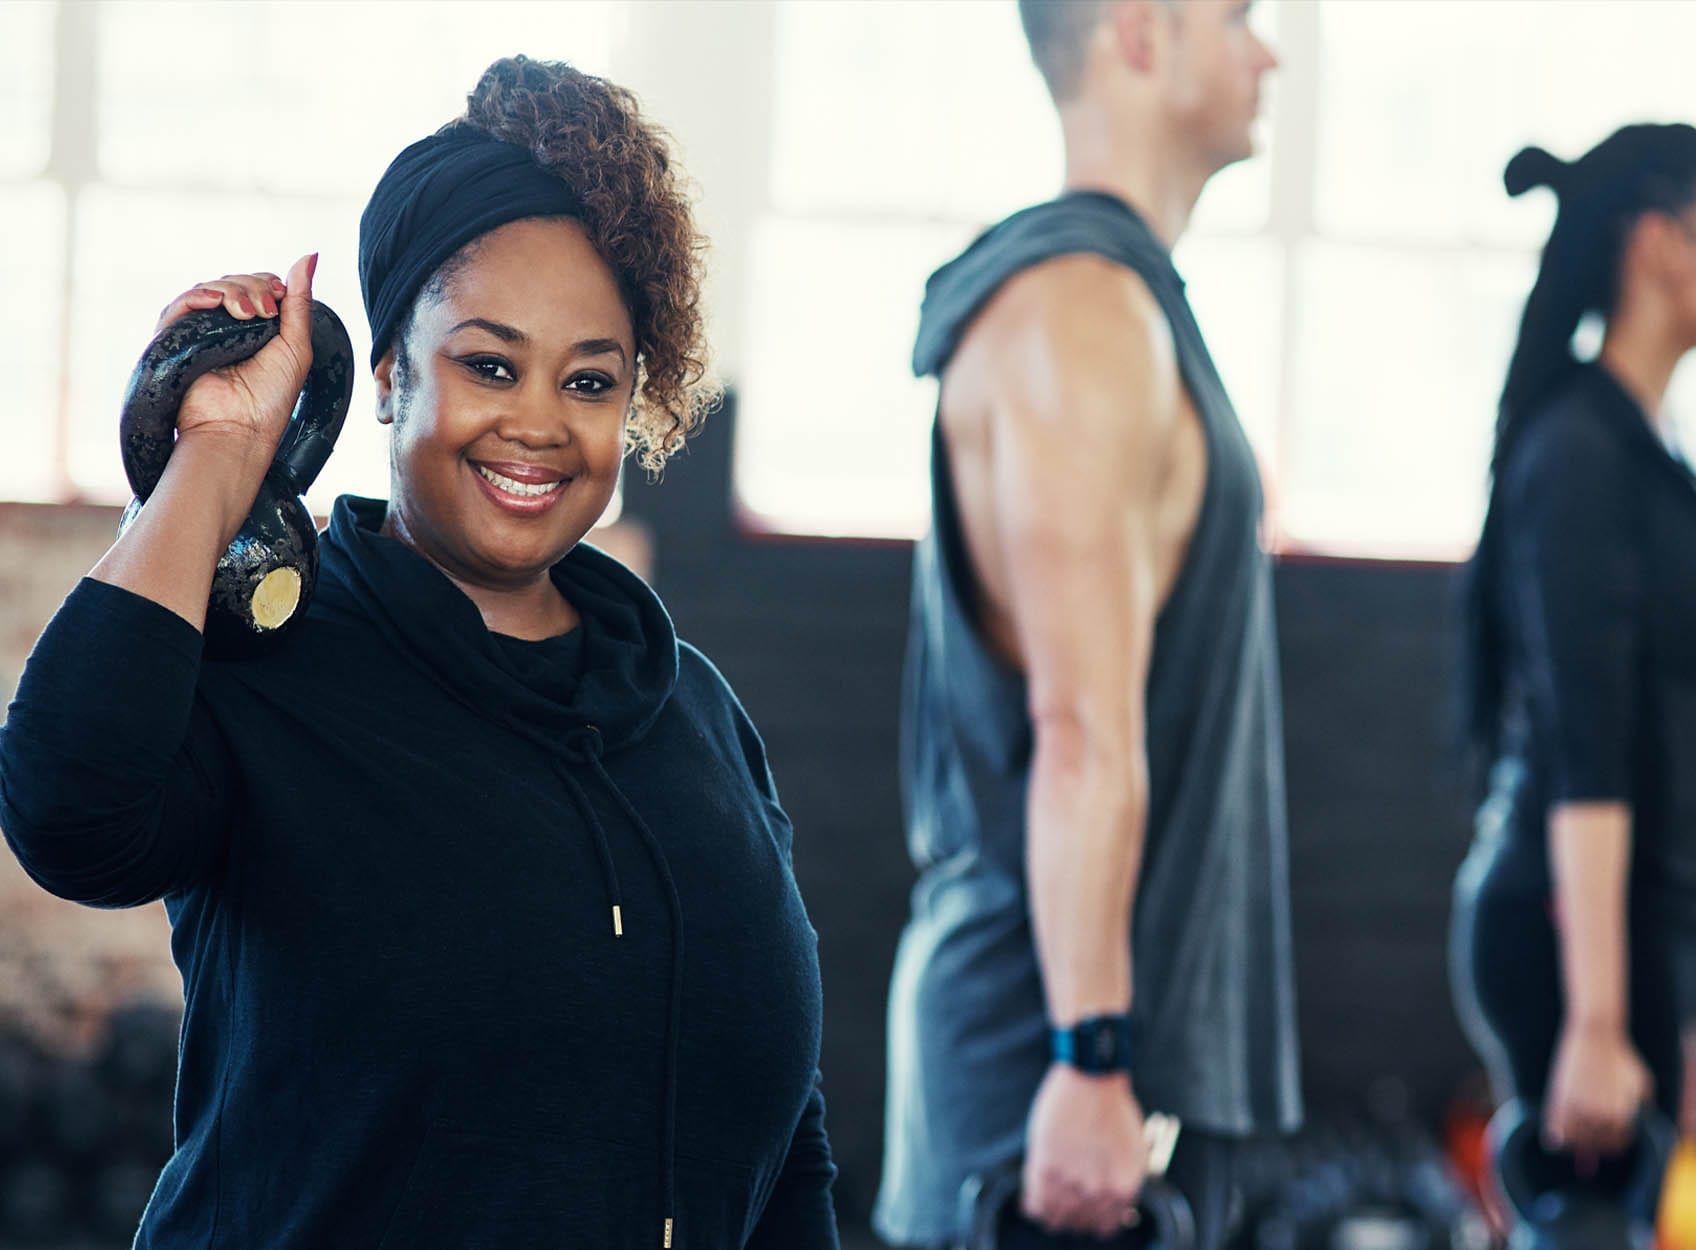 woman holding a kettlebell at a group fitness class